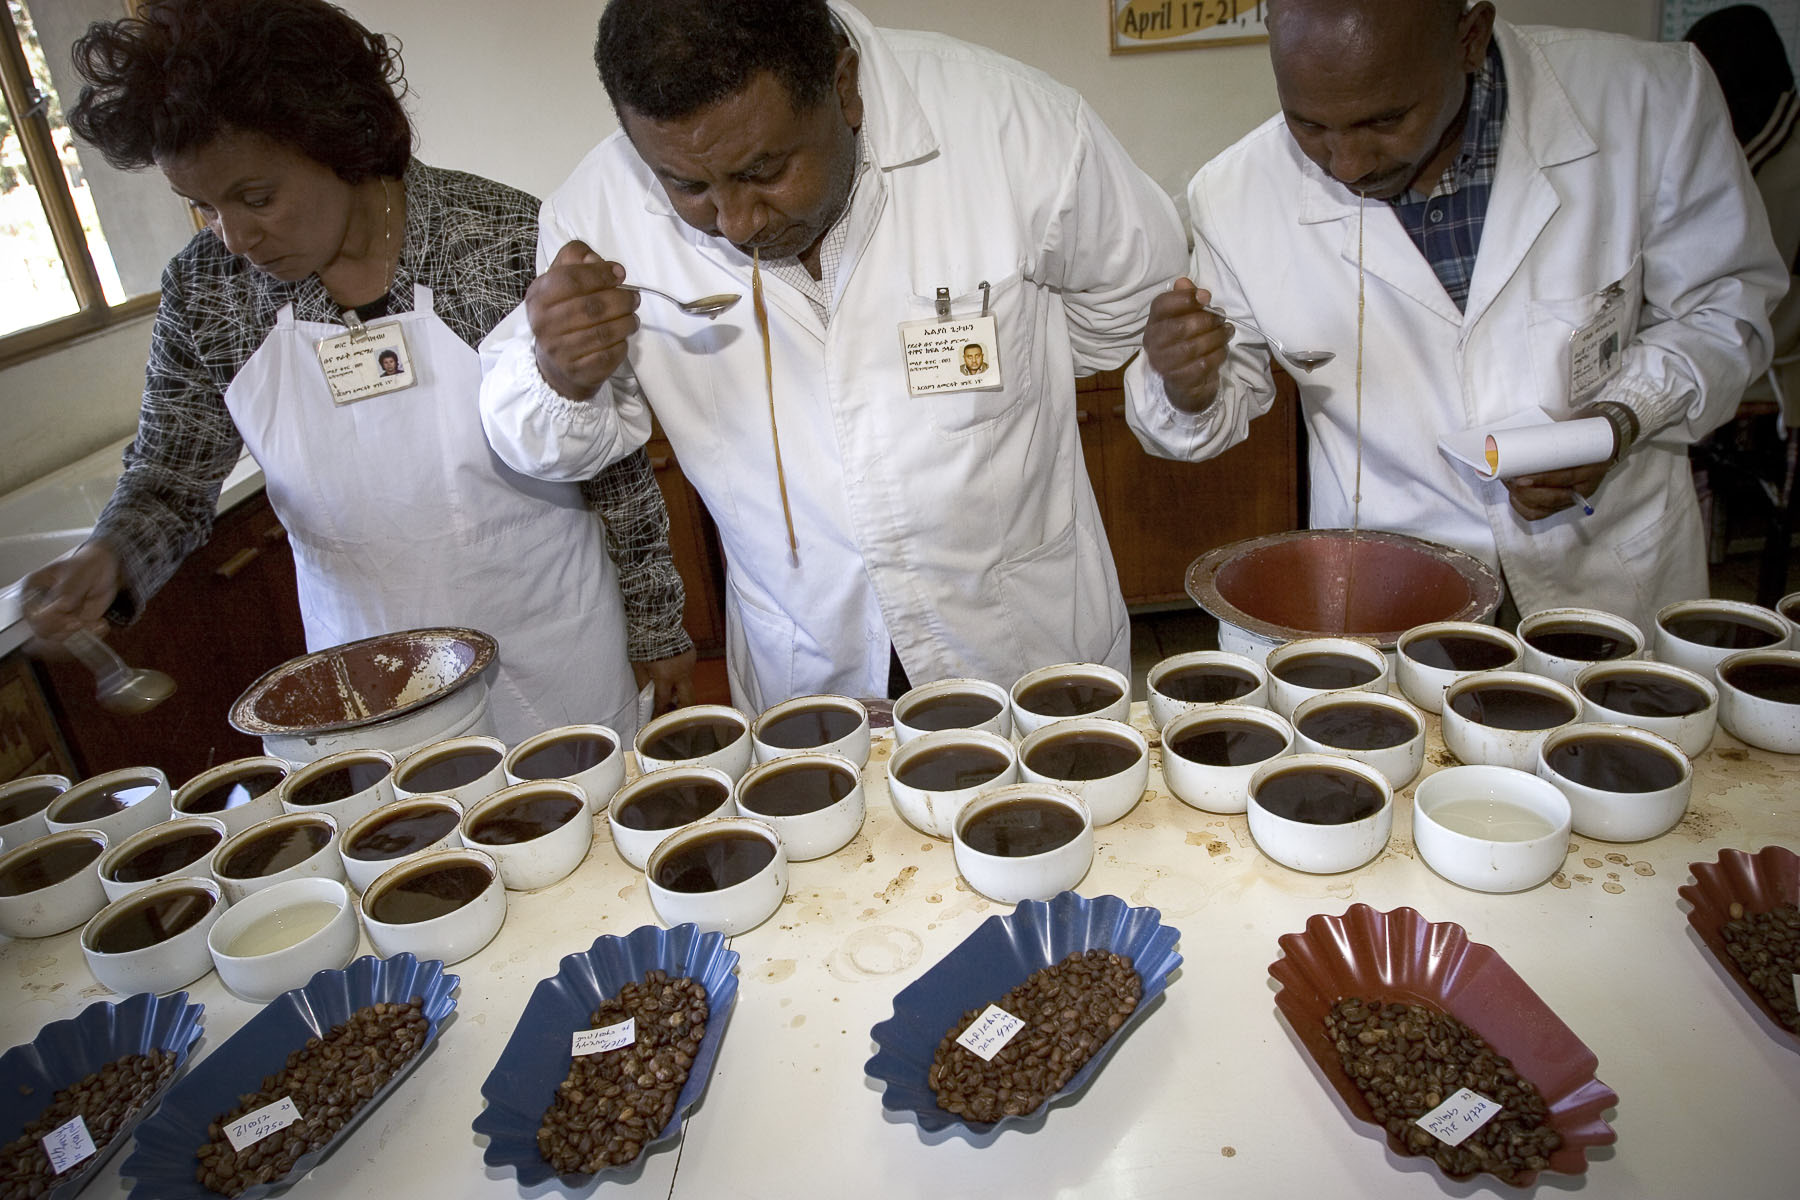 Men testing the quality of coffee for the Coffee and Tea Authority in November 2004